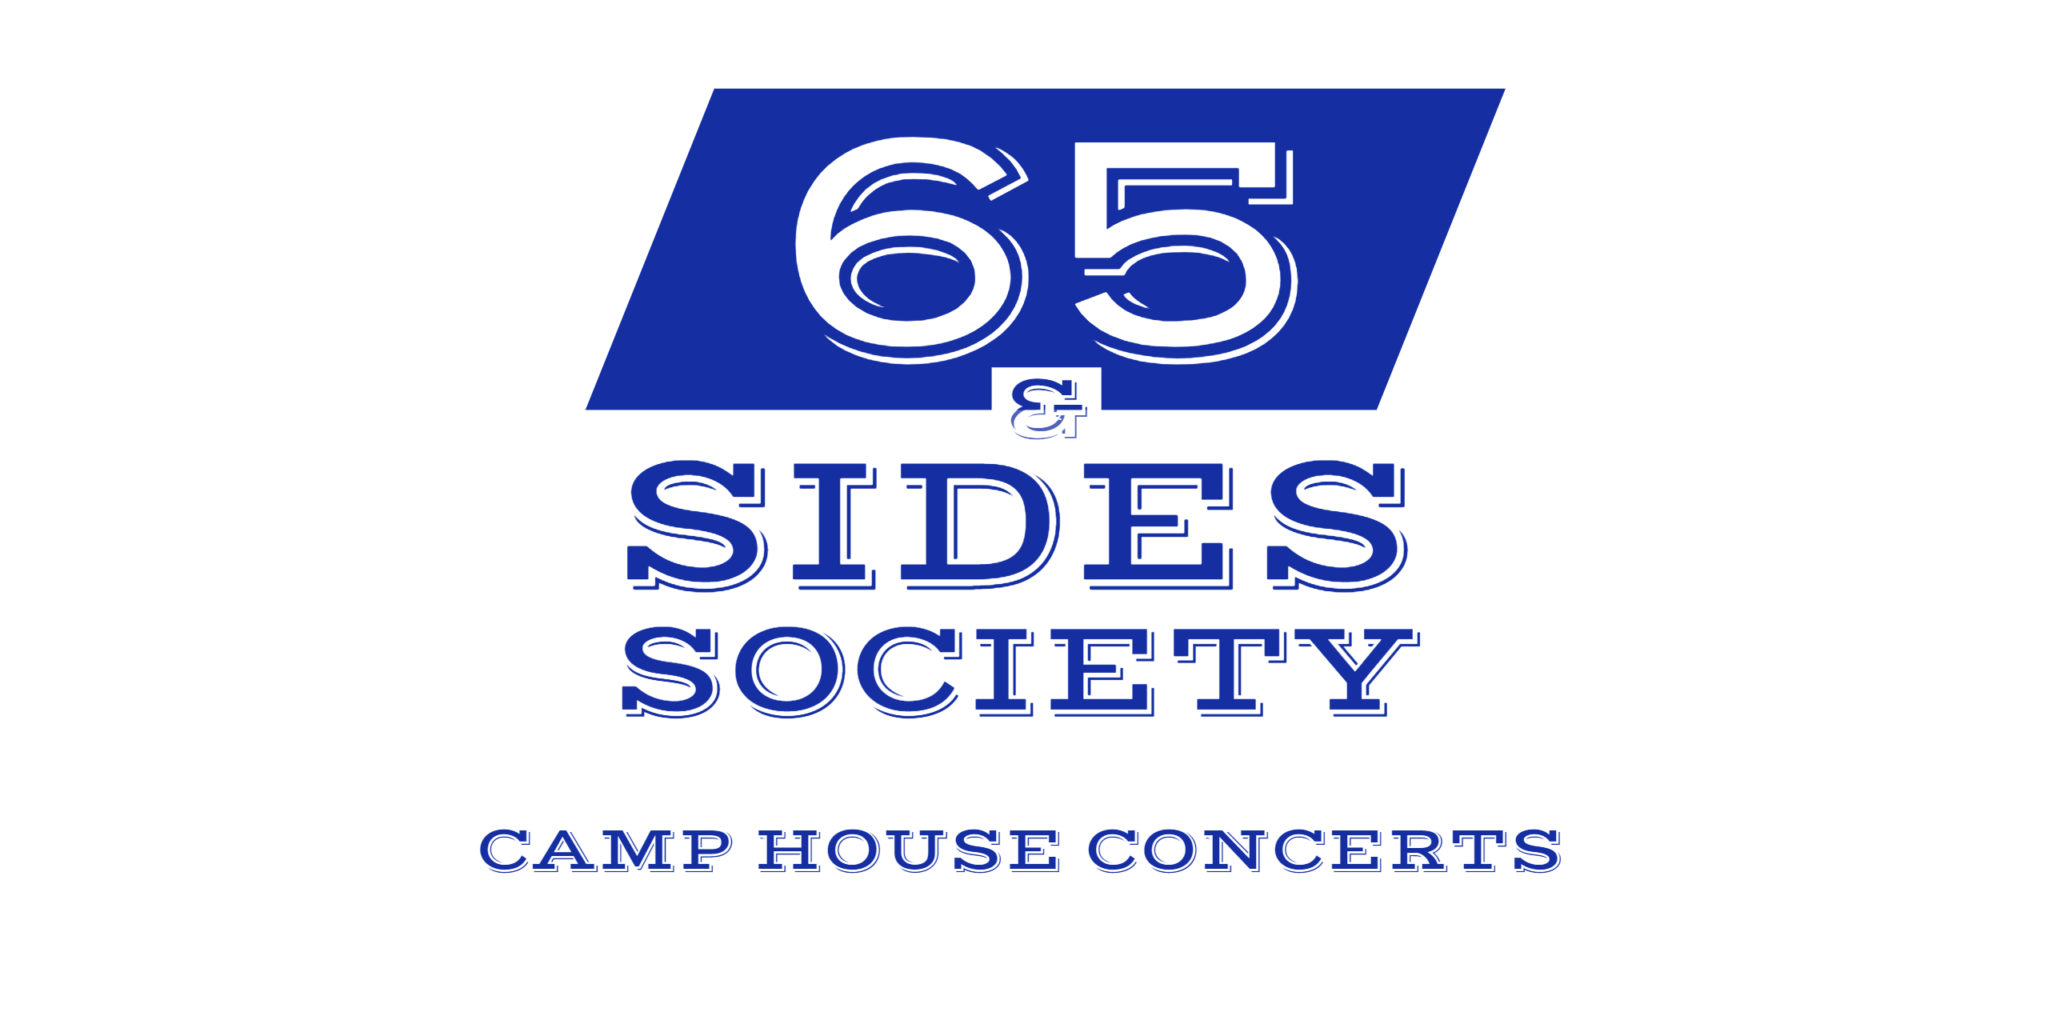 65 & Sides Society Explained